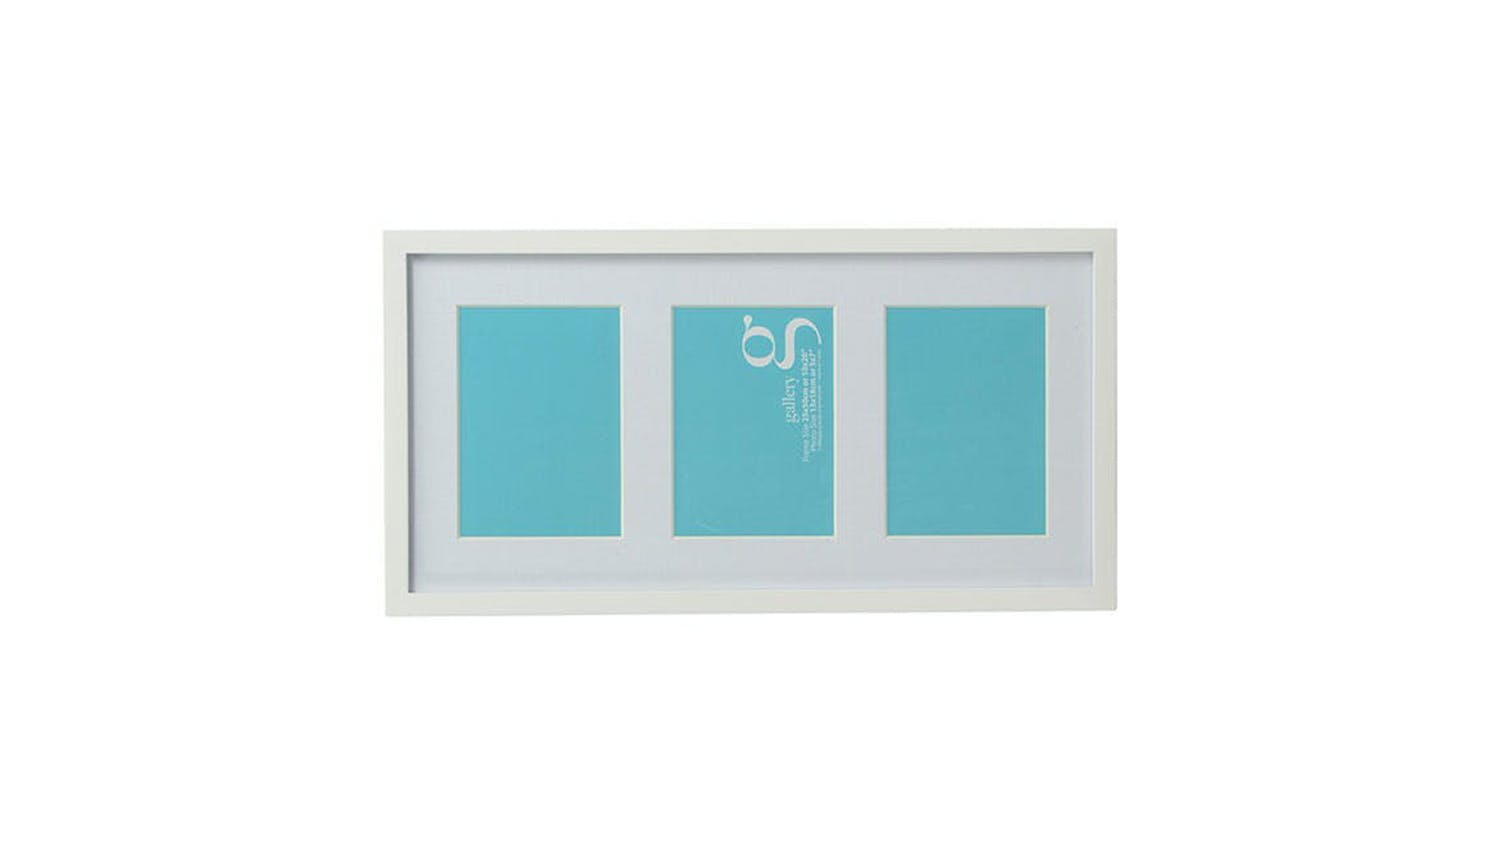 UR1 Gallery 10x20 Photo Frame with 3 5x7 Openings - White